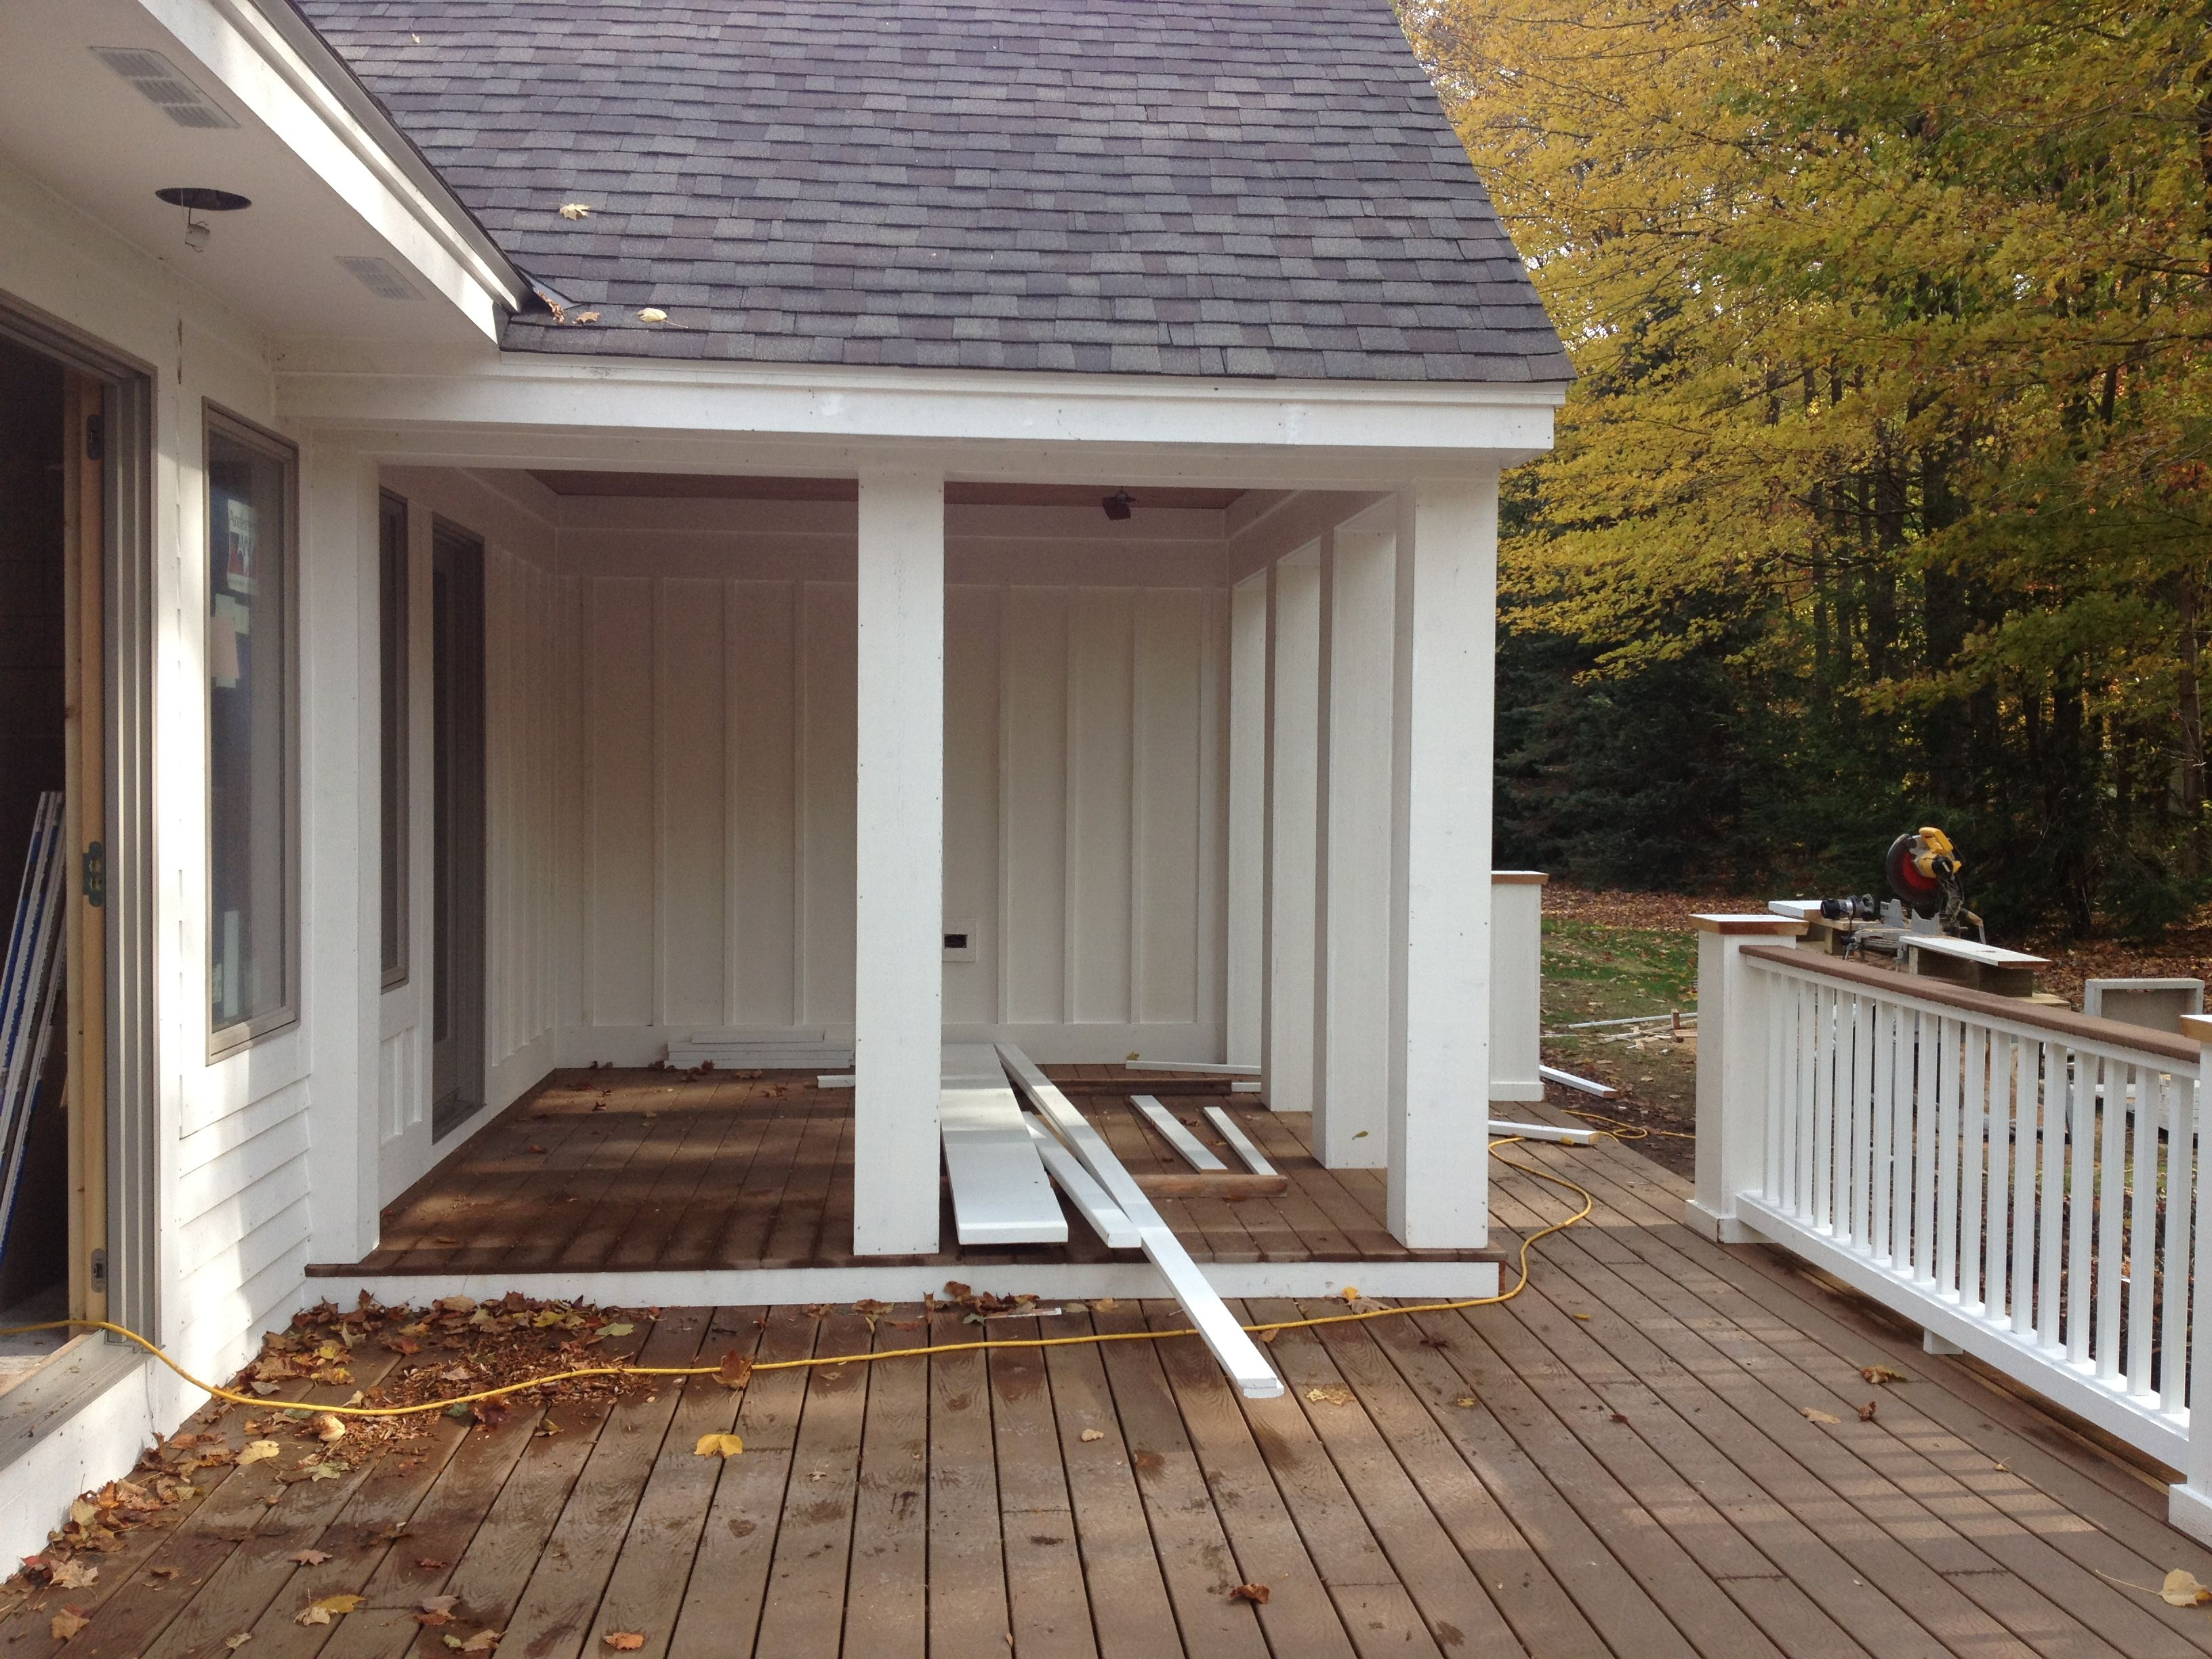 2 level deck half covered and half open covered on steps in discovering the right covered deck ideas id=67925